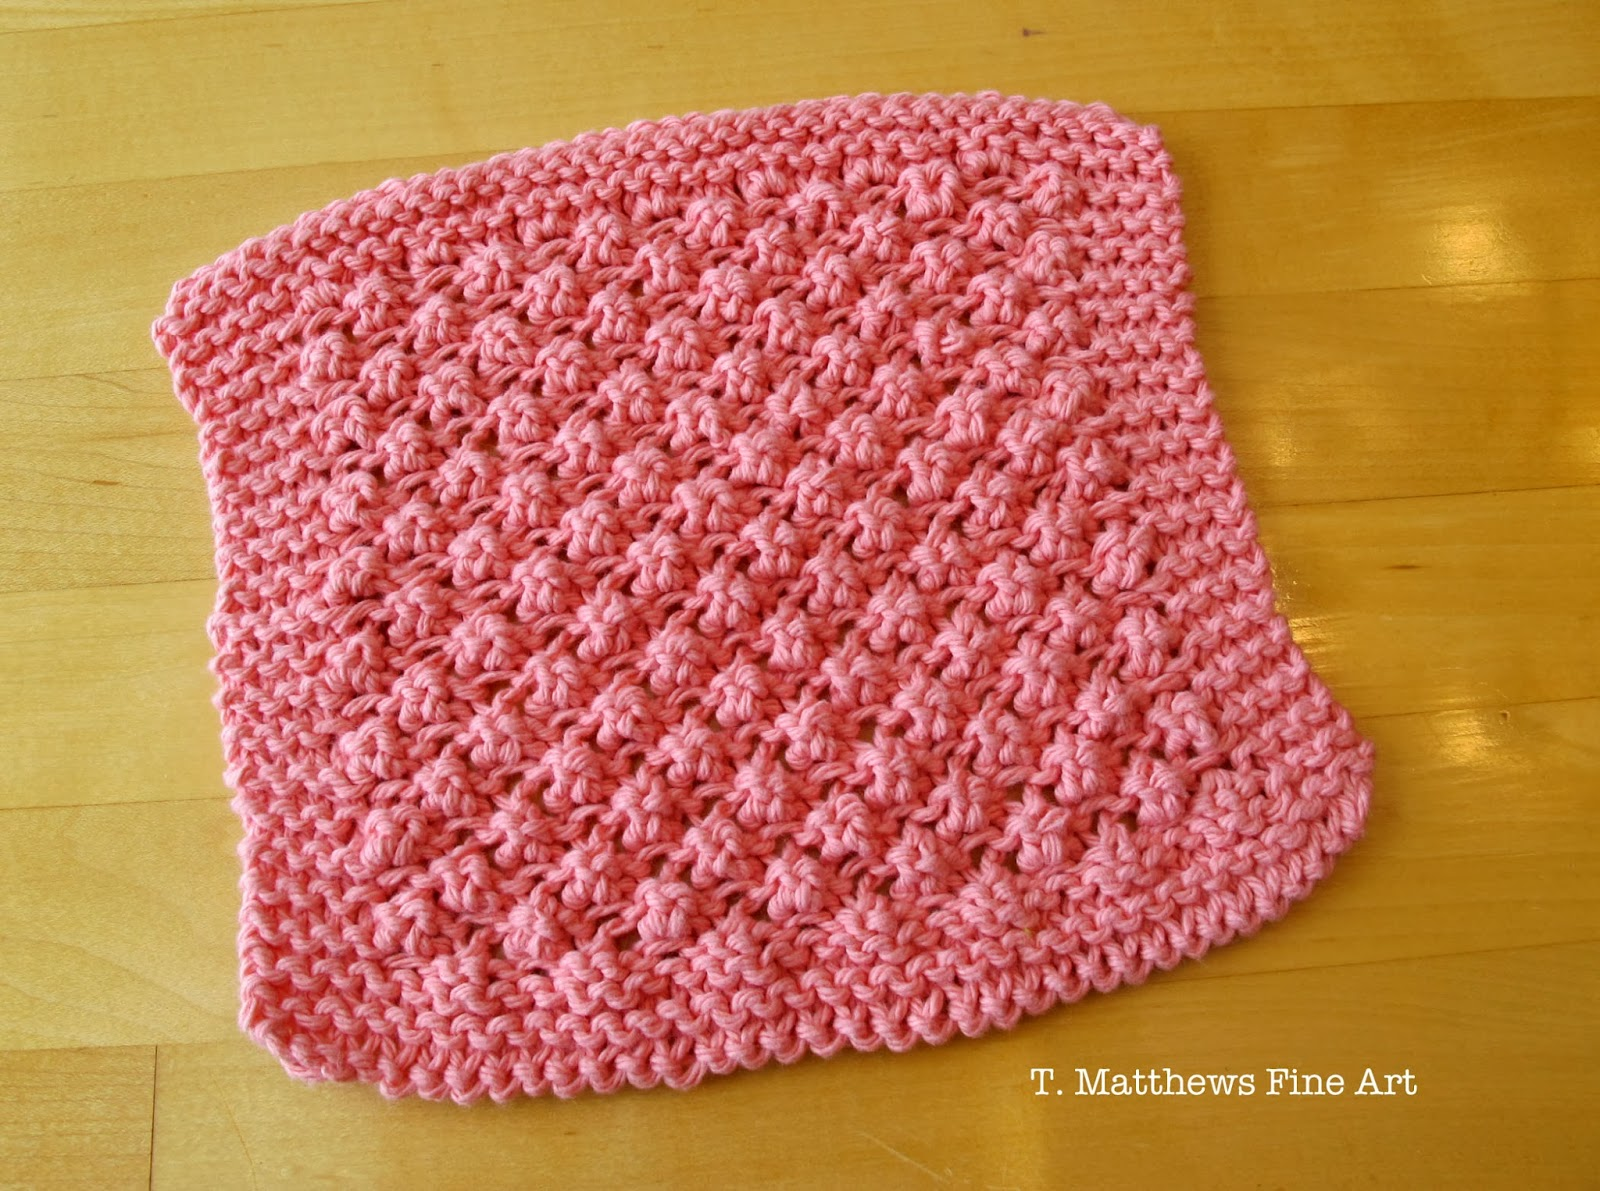 T matthews fine art free knitting pattern raspberry baby washcloth free knitting pattern raspberry baby washcloth bankloansurffo Images